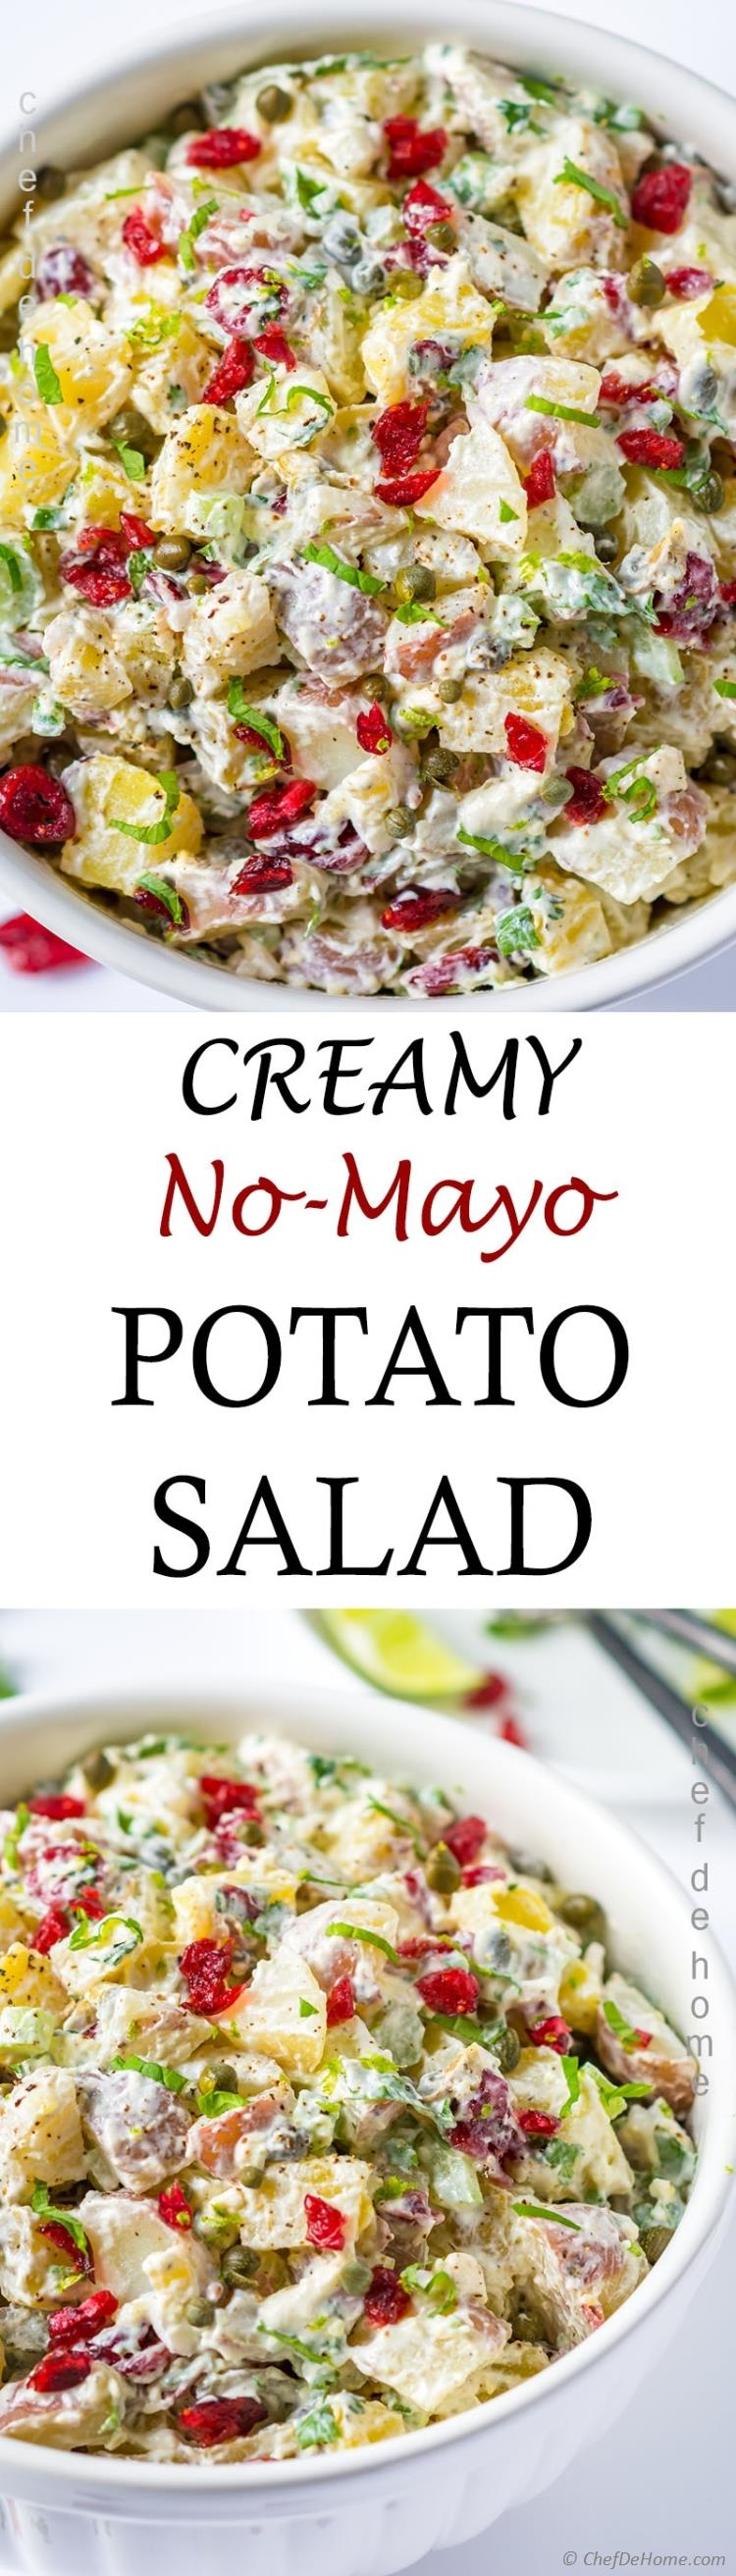 creamy red potato salad without mayo with cream cheese | chefdehome.com